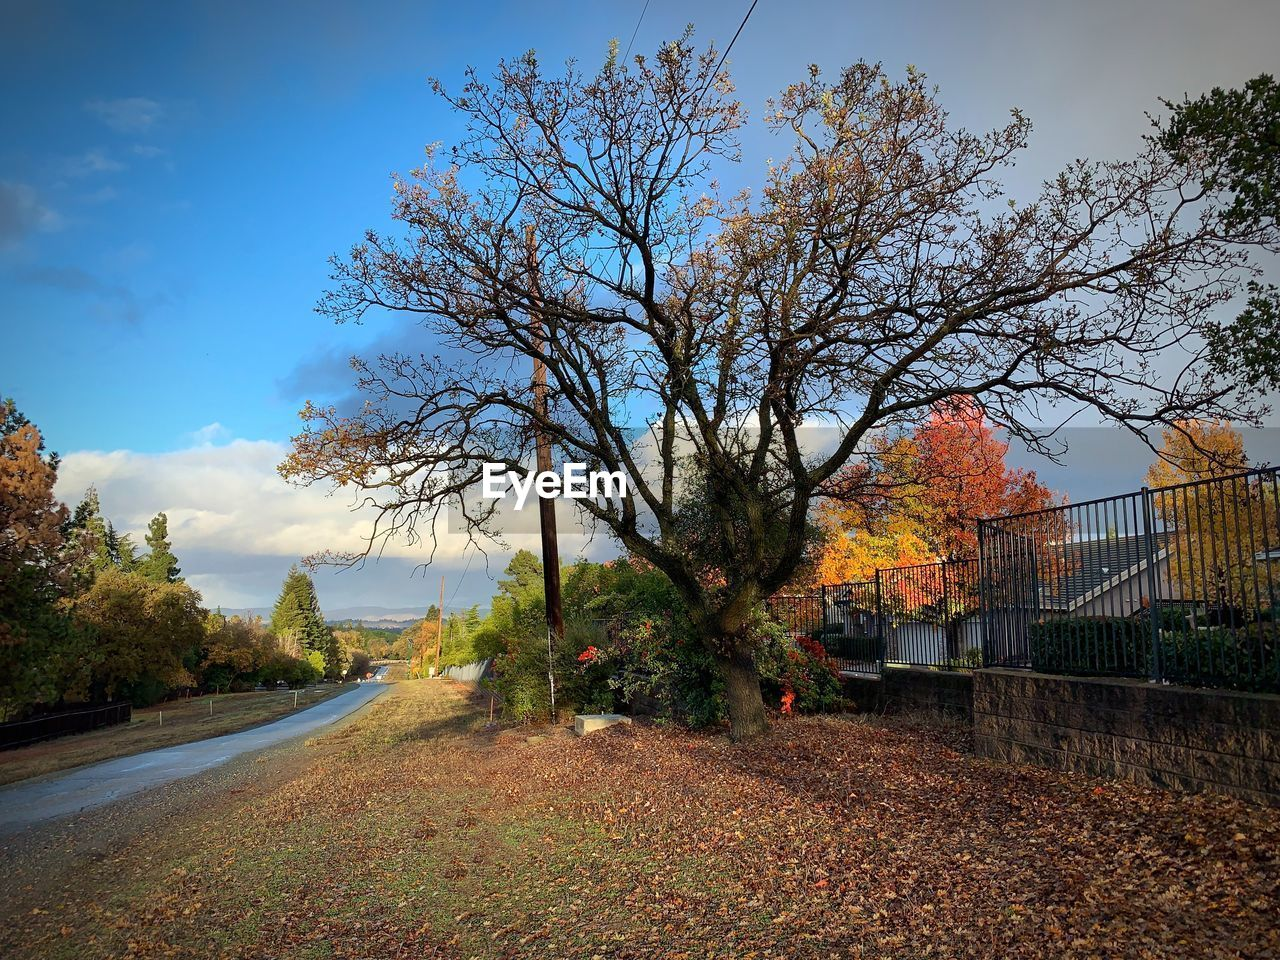 tree, plant, sky, autumn, nature, change, beauty in nature, no people, growth, direction, road, cloud - sky, day, the way forward, outdoors, transportation, tranquility, branch, barrier, scenics - nature, fall